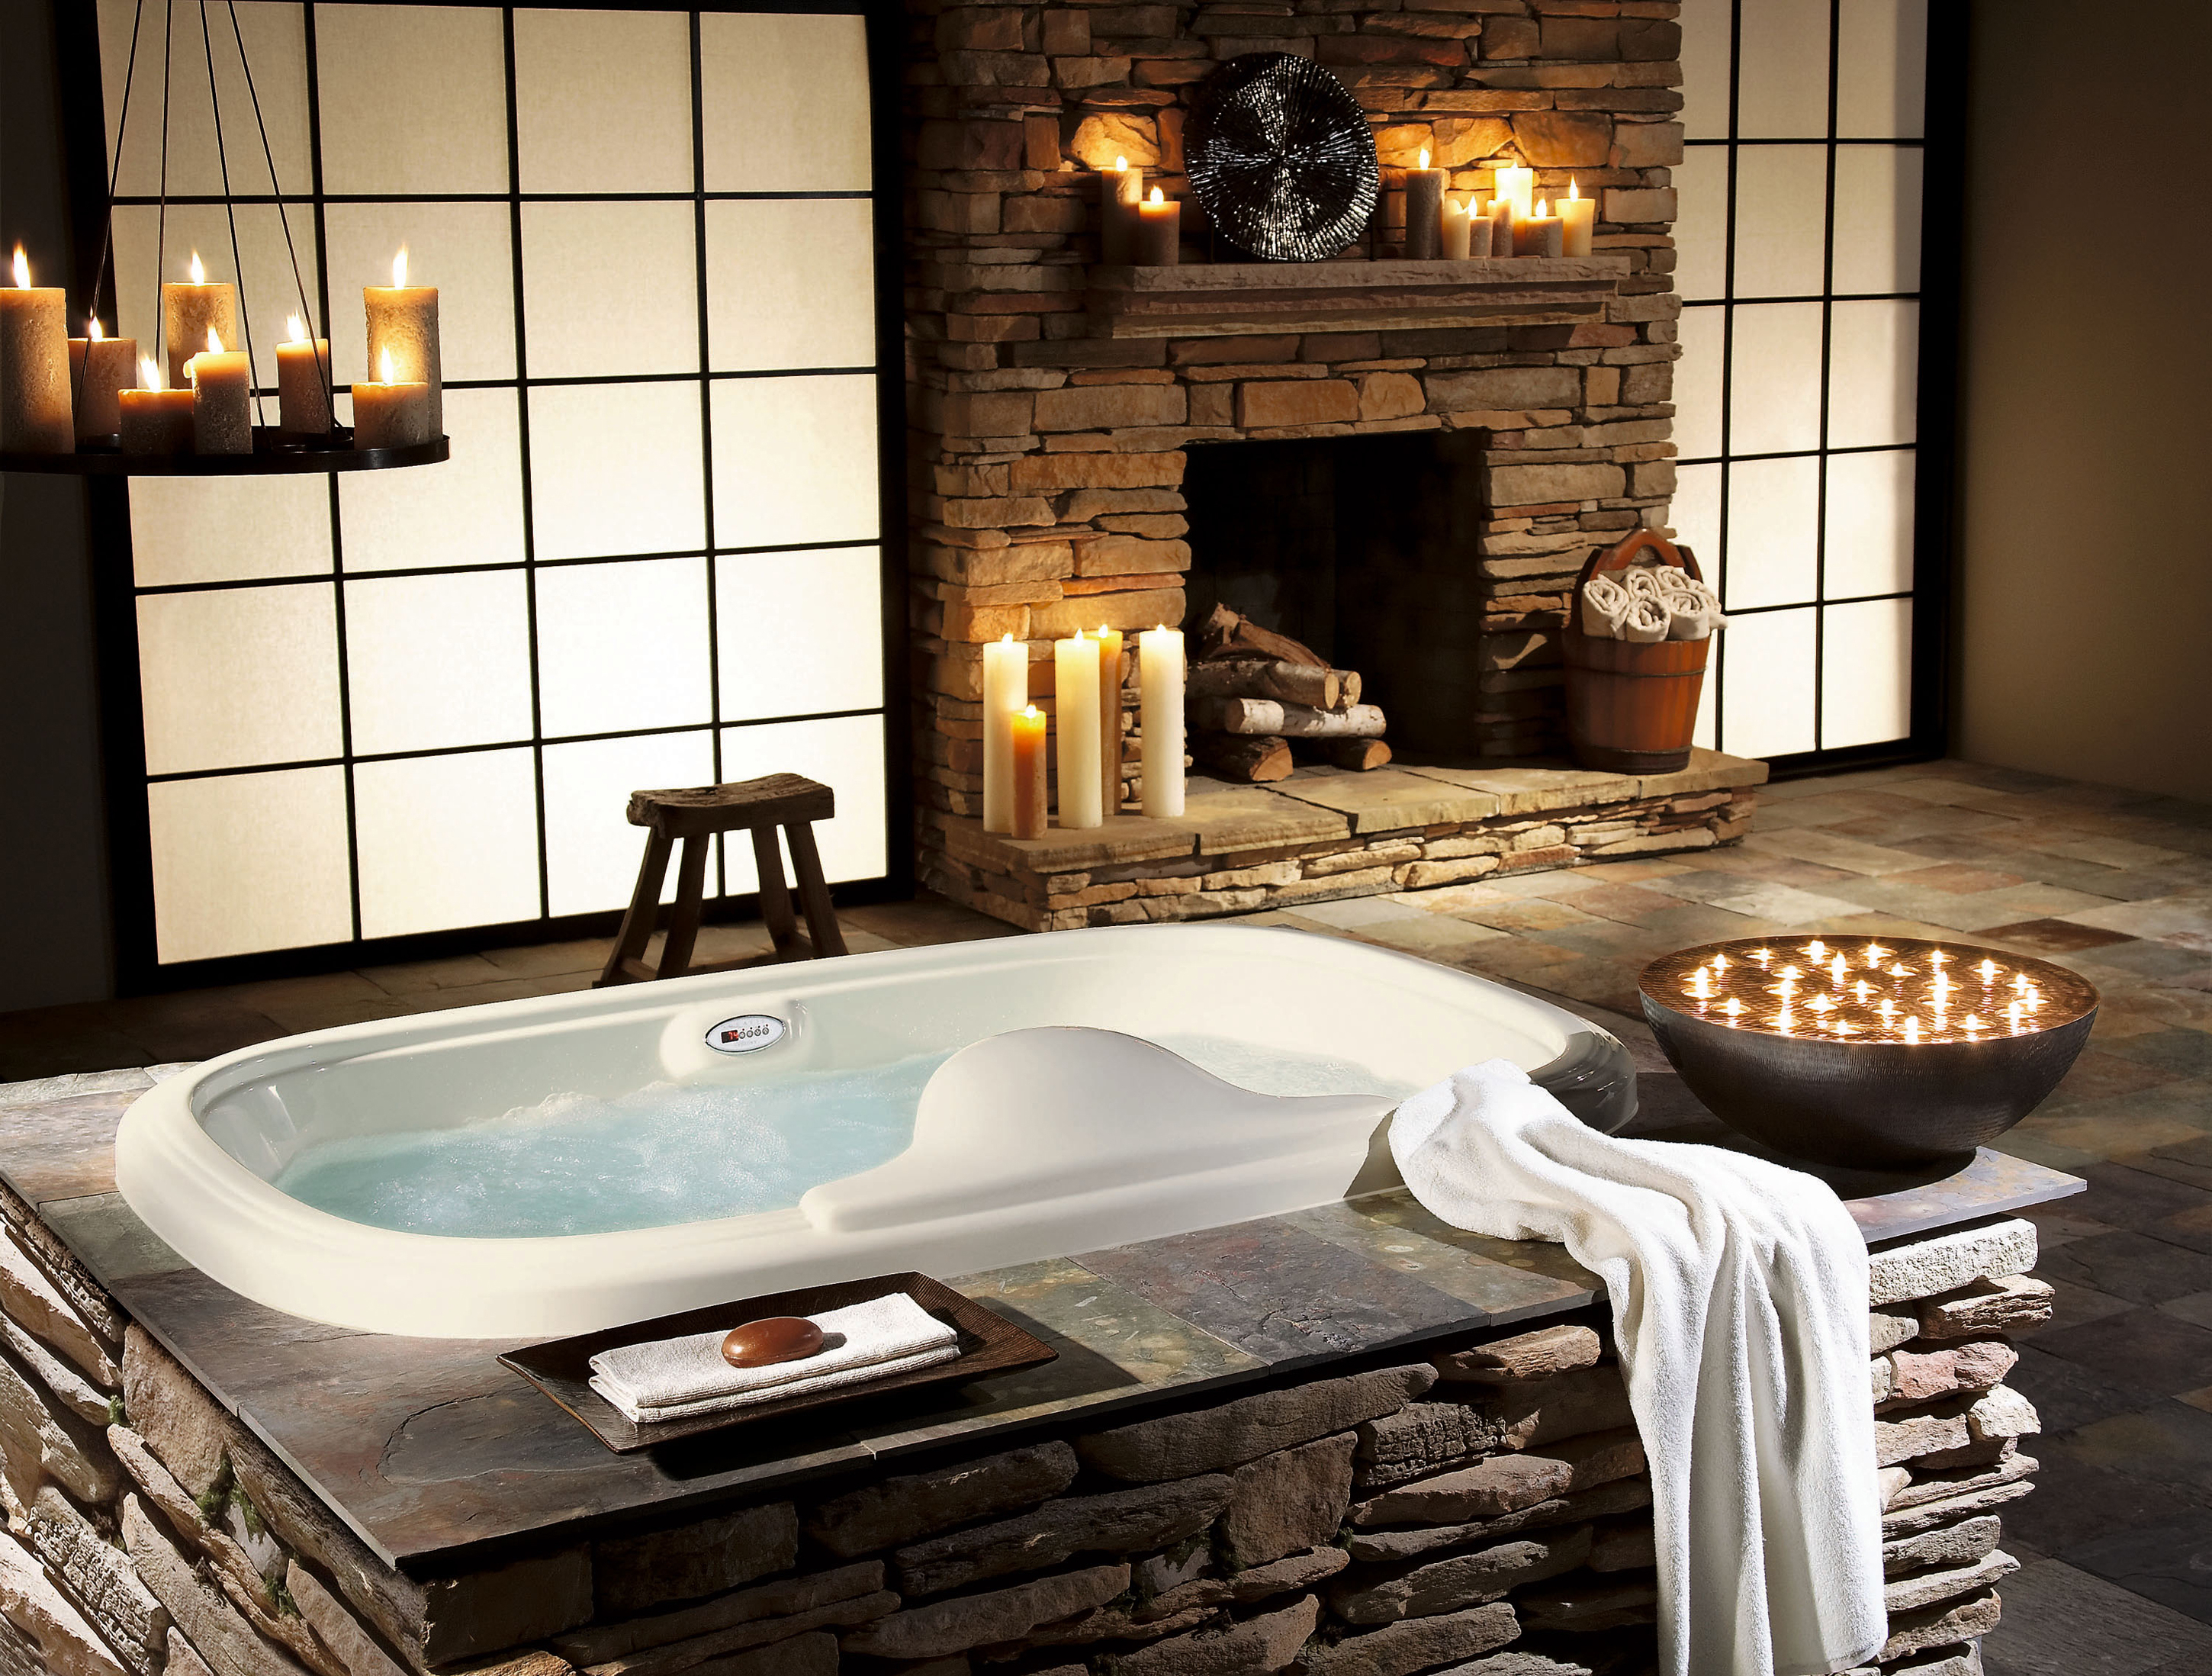 Luxurious Set Inspiration With White Bathtub Brown Soap Dish With Brown Soap And White Brown Candles Wonderful Set Inspiration (Image 28 of 123)